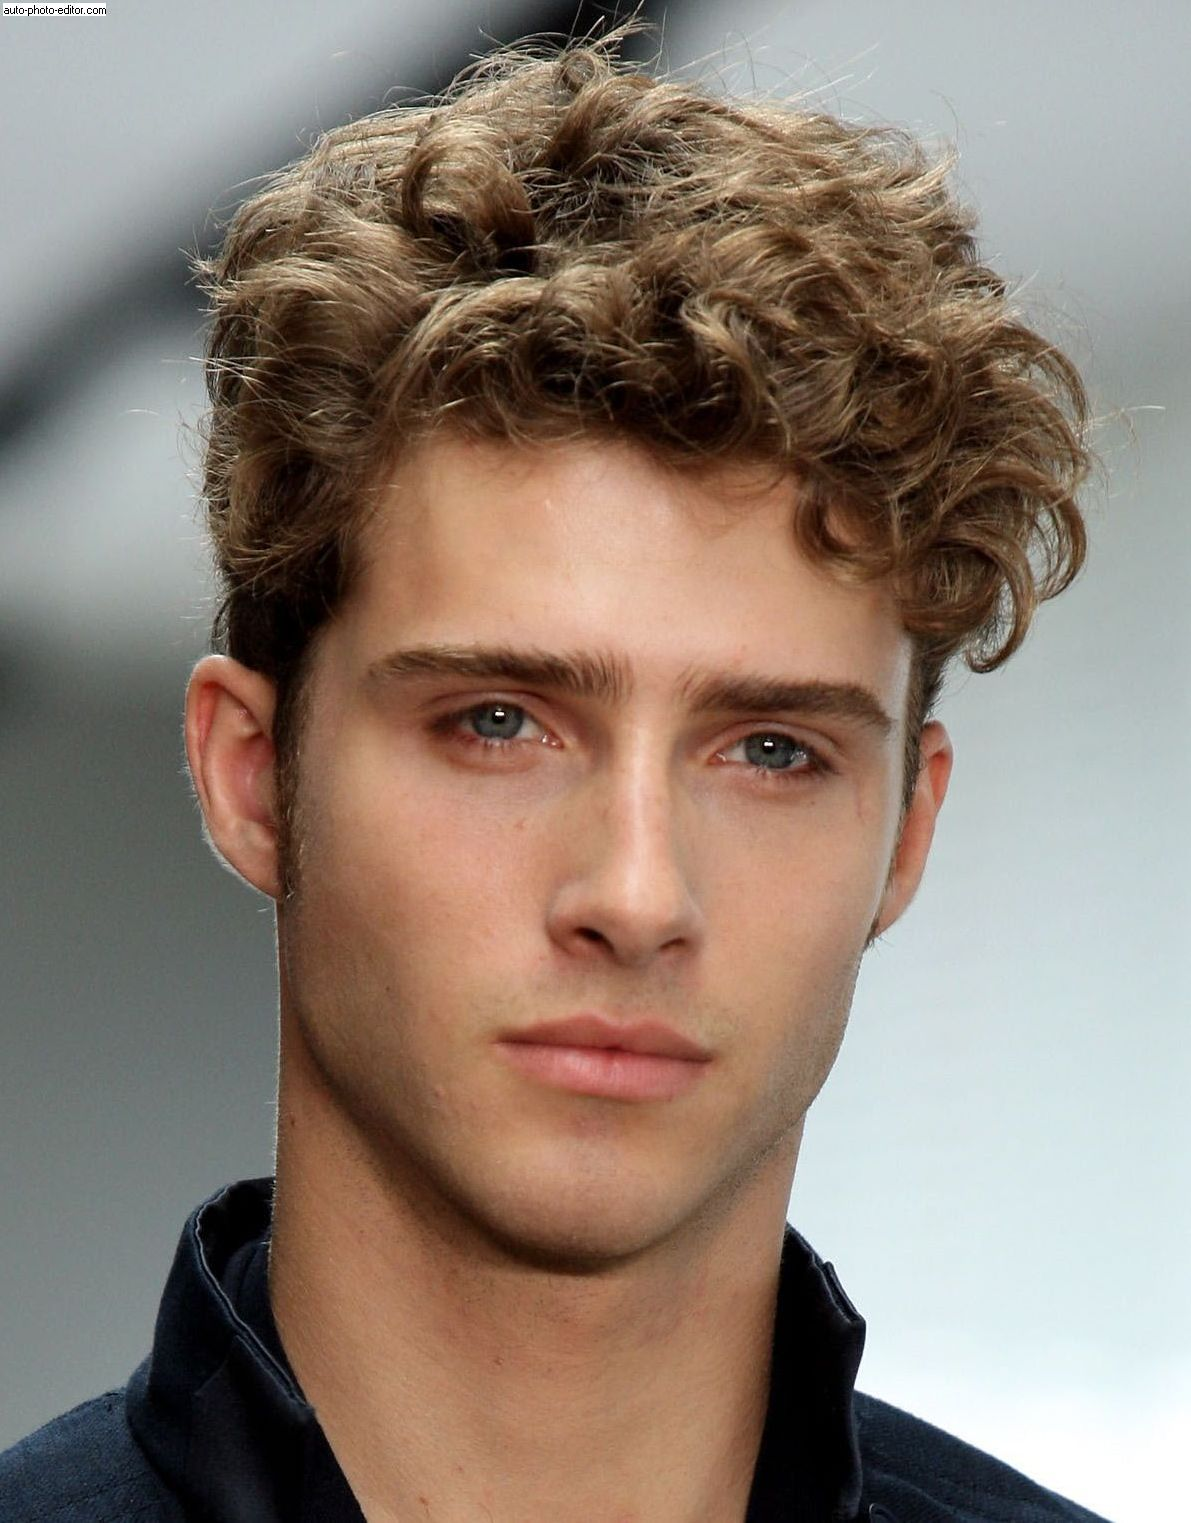 Curly Hairstyles For Men Moda Para Caballeros Fashion For Men